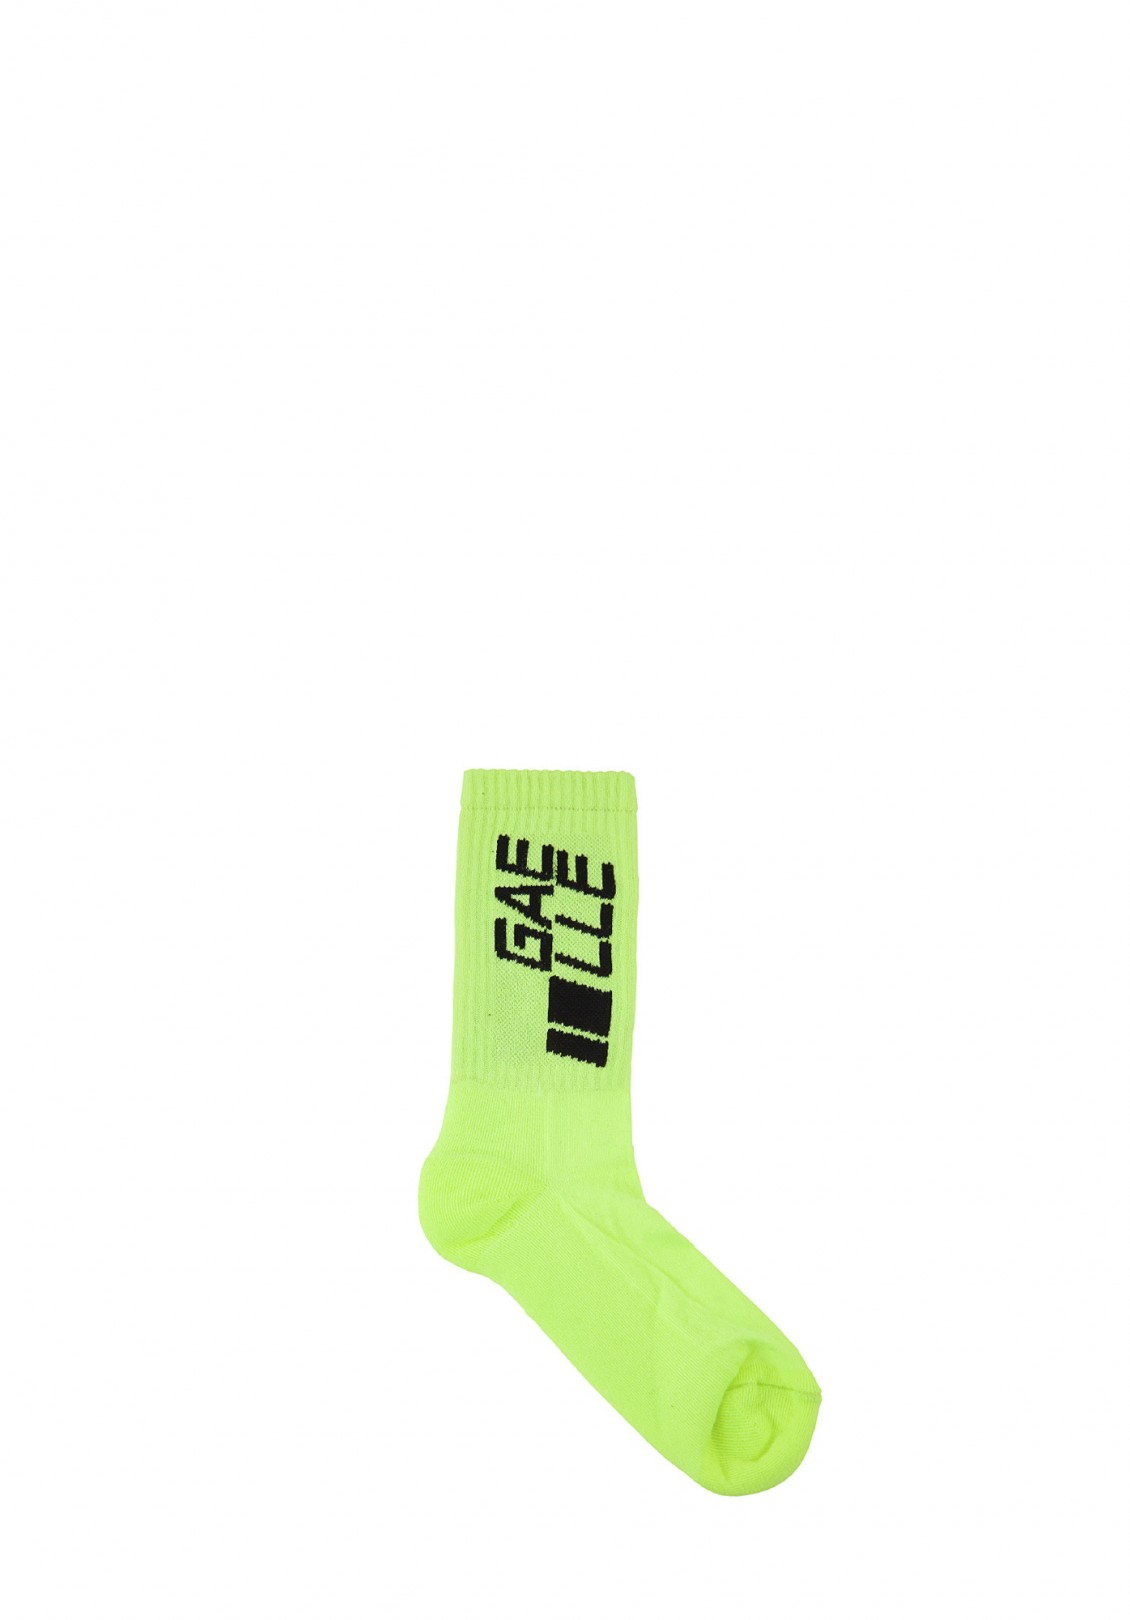 SOCKS - GBDA1260 - GAELLE PARIS